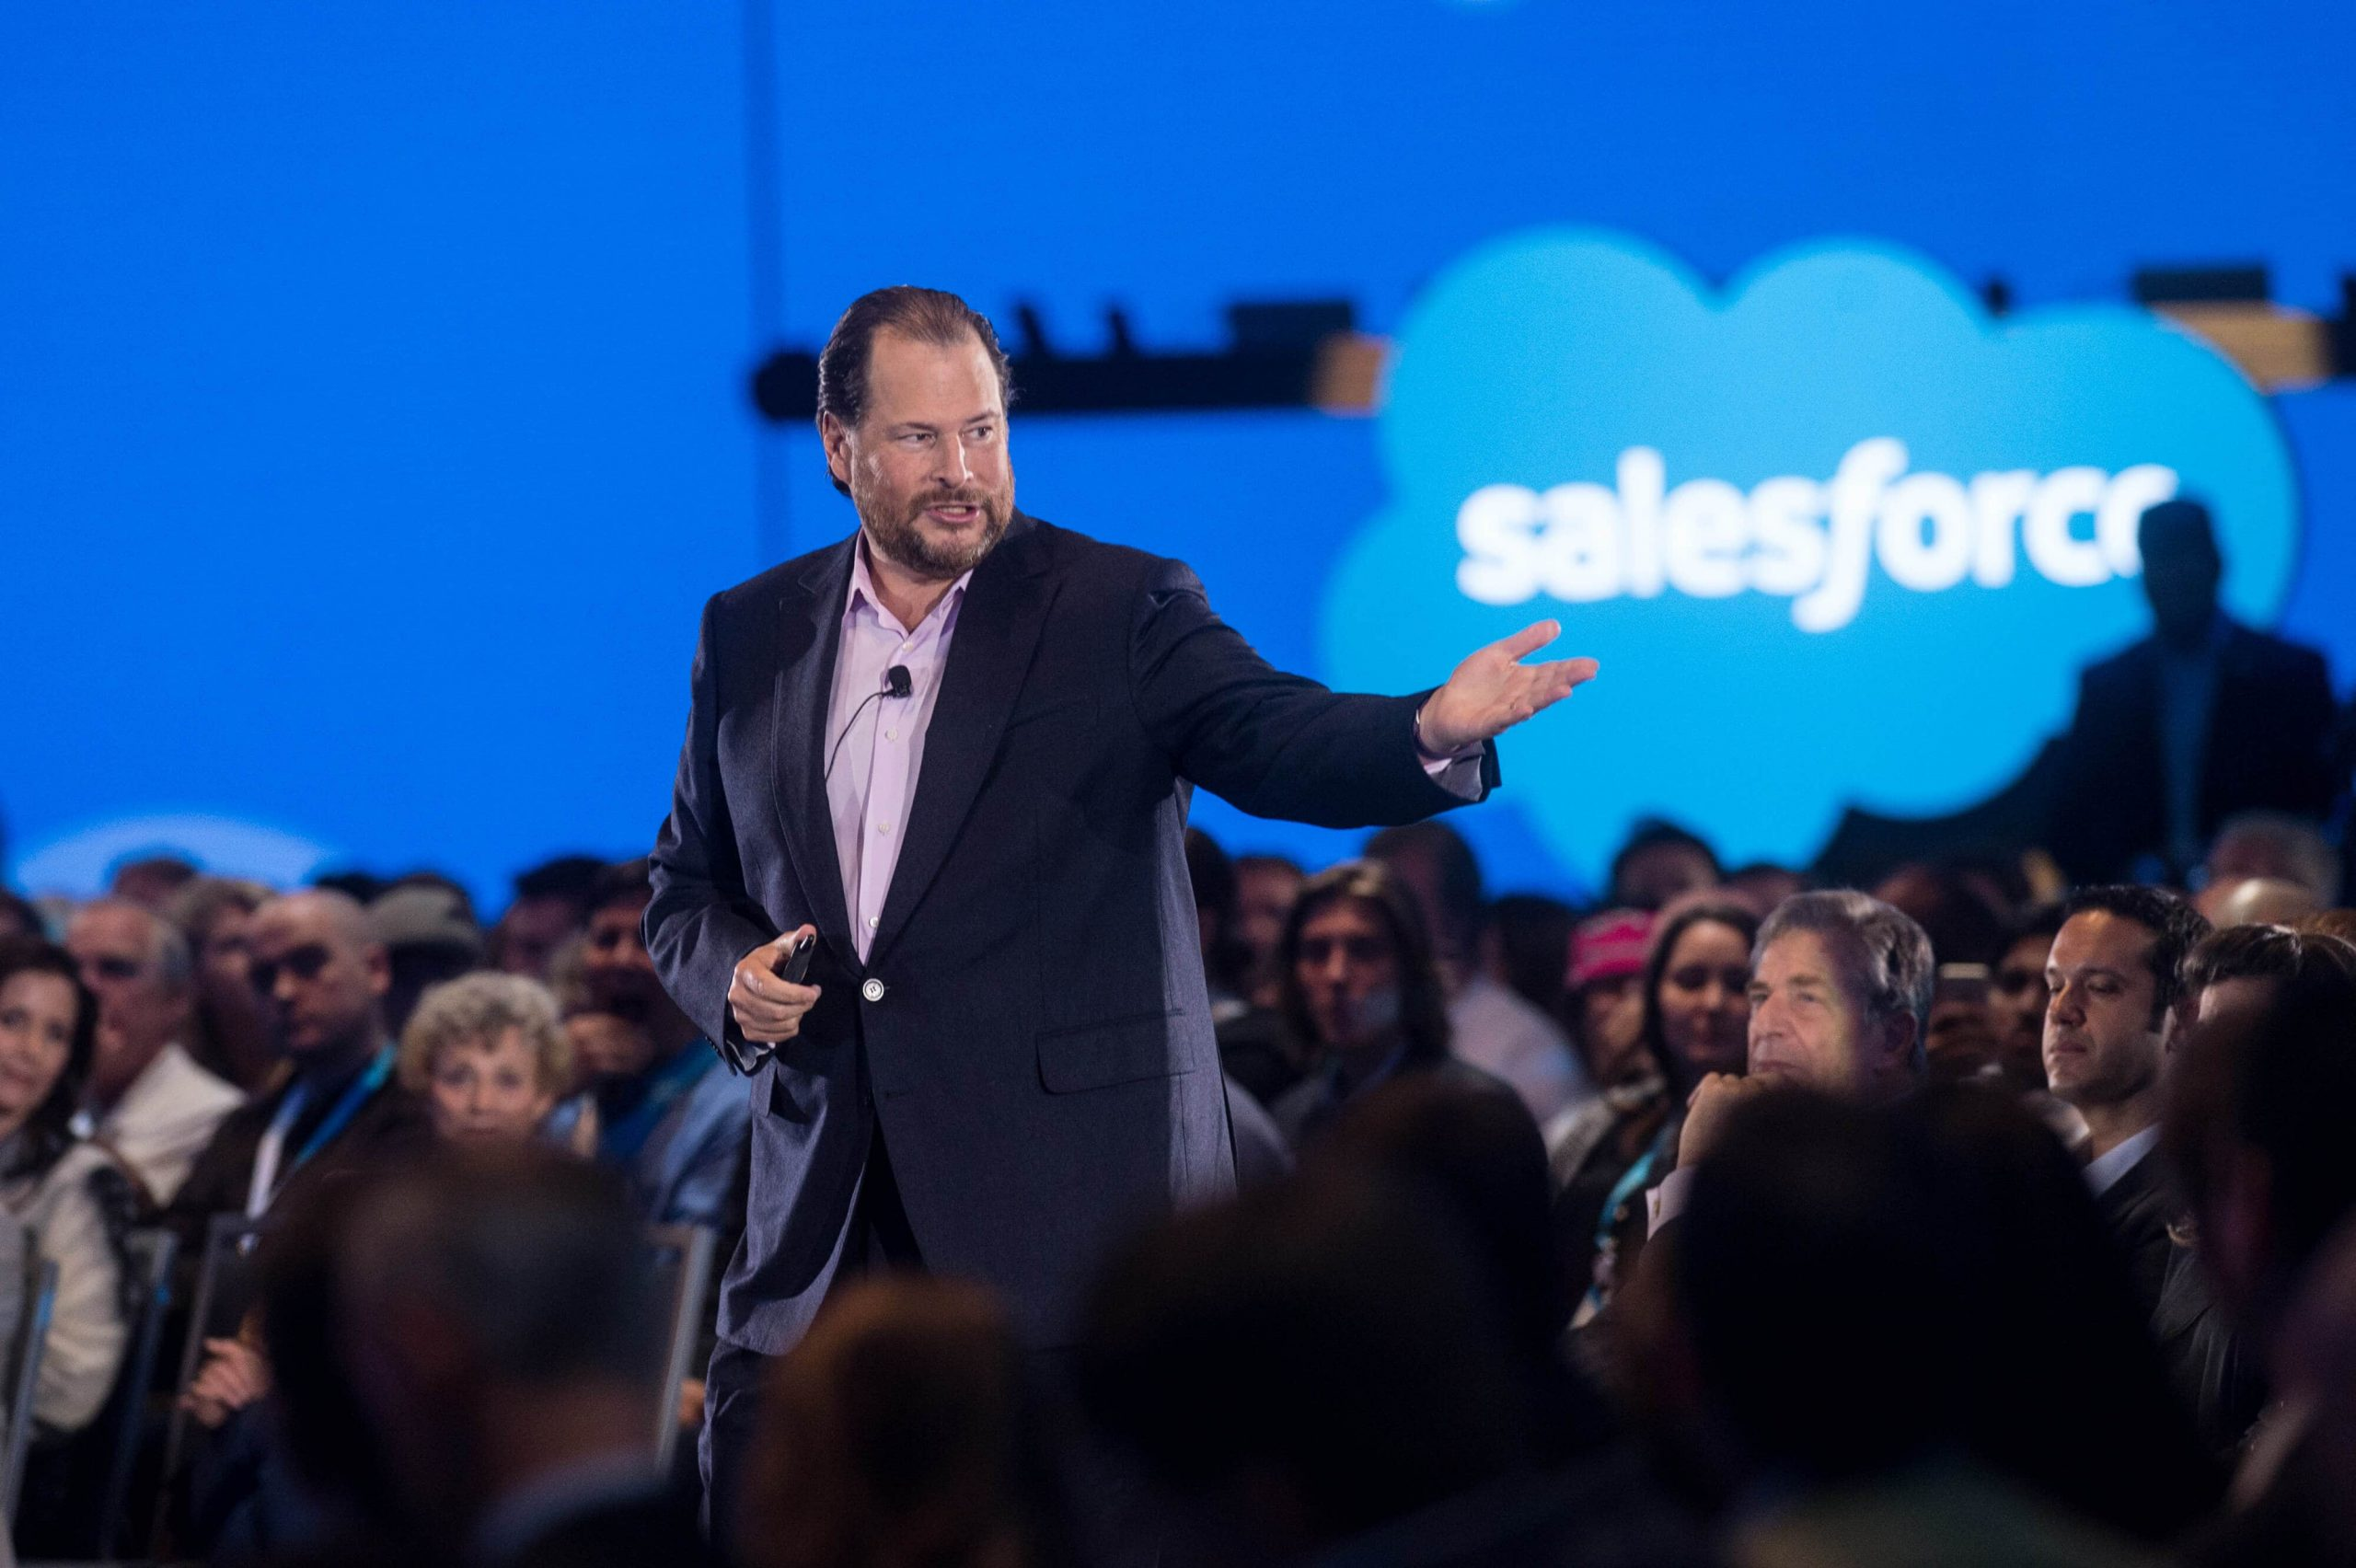 DreamForce - Top technology events of 2017 - Motioncue